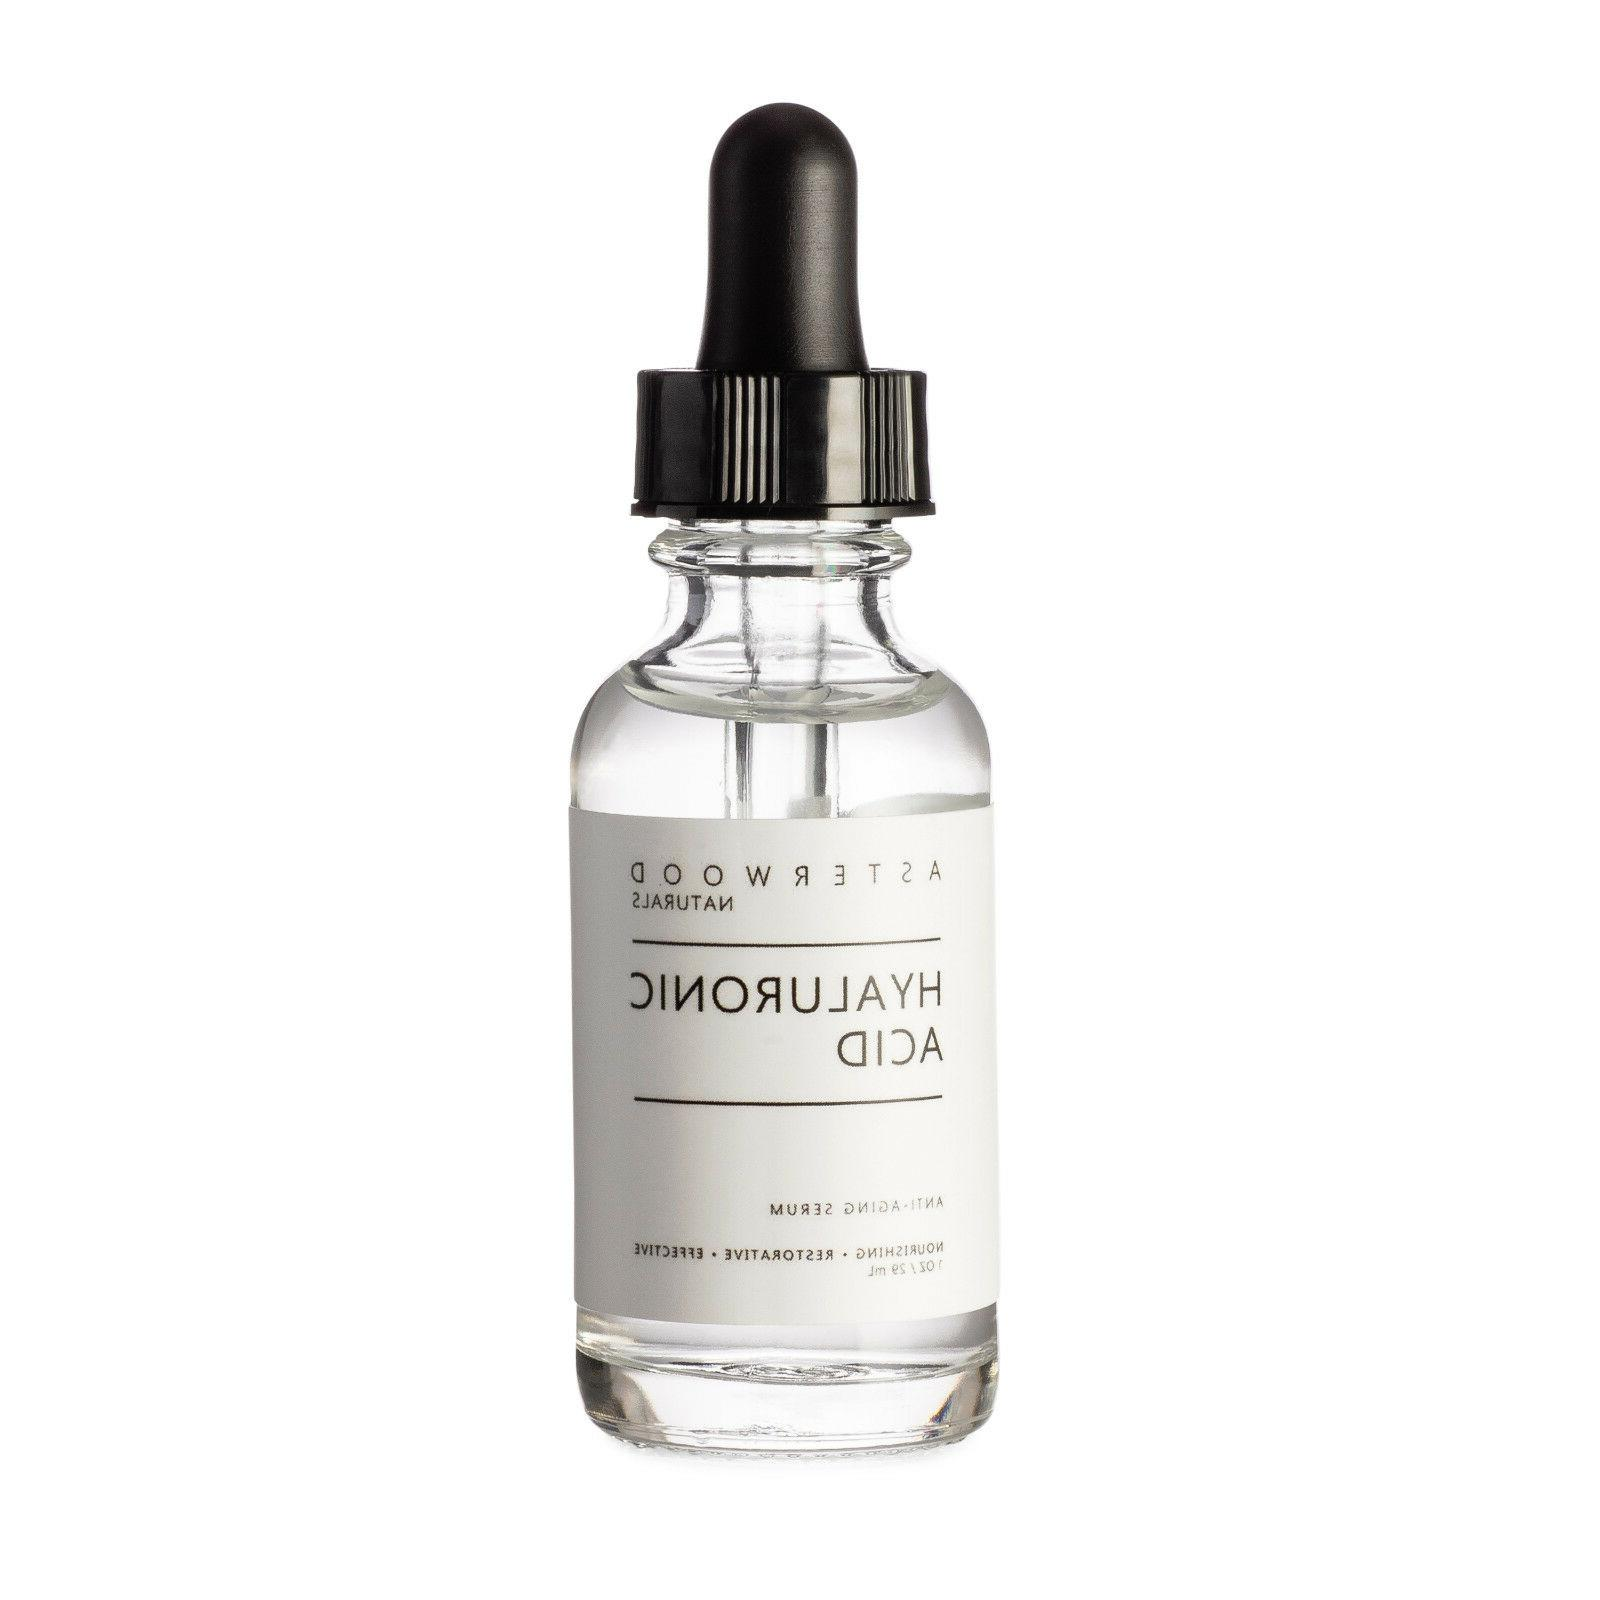 hyaluronic acid serum organic vegan anti aging